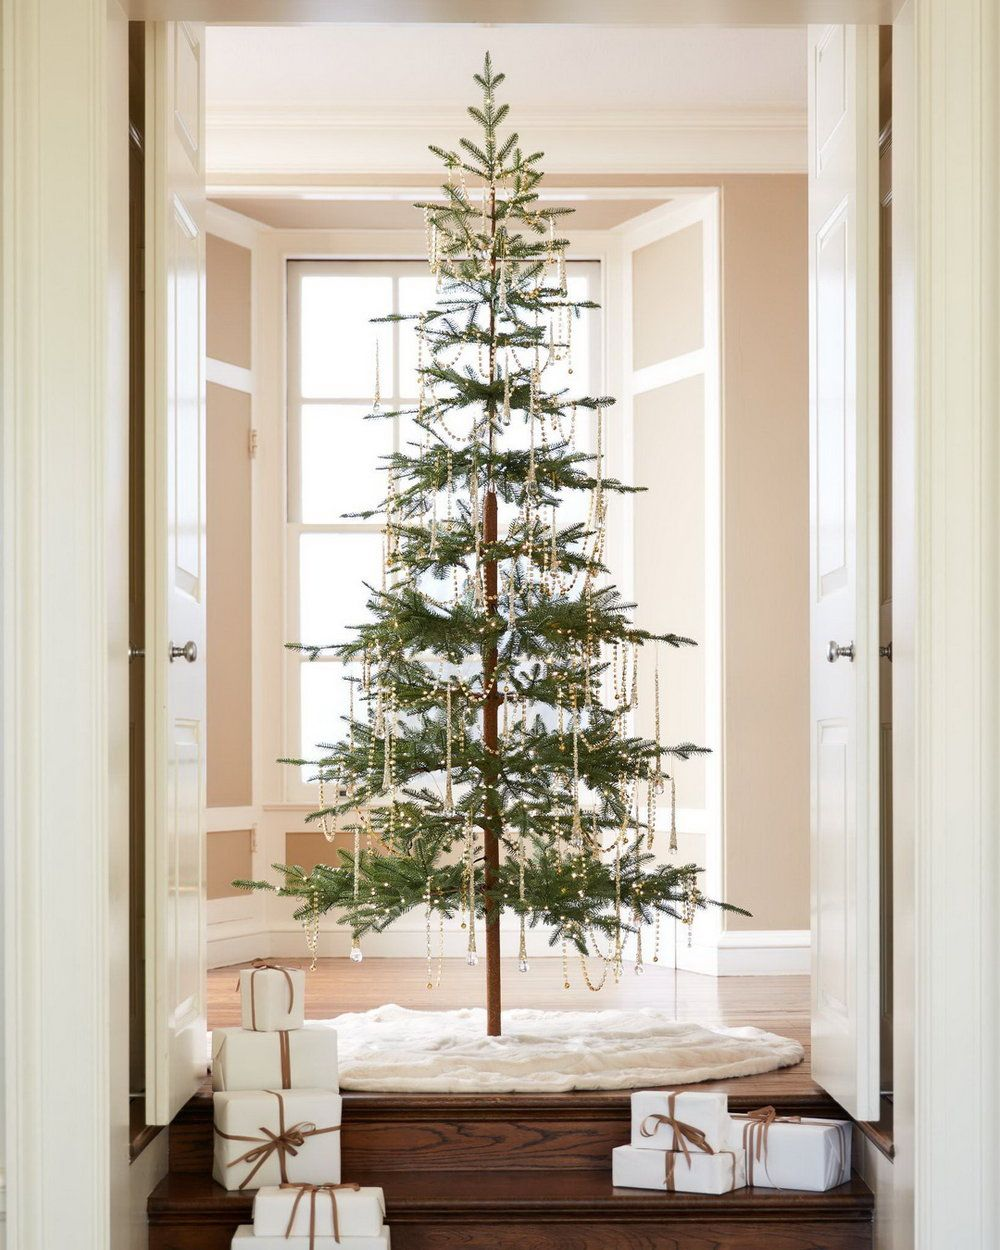 Our Rustic Alpine Balsam Fir Takes Inspiration From Beautiful Mountain Evergreens Spar Balsam Fir Christmas Tree Fir Christmas Tree Balsam Hill Christmas Tree